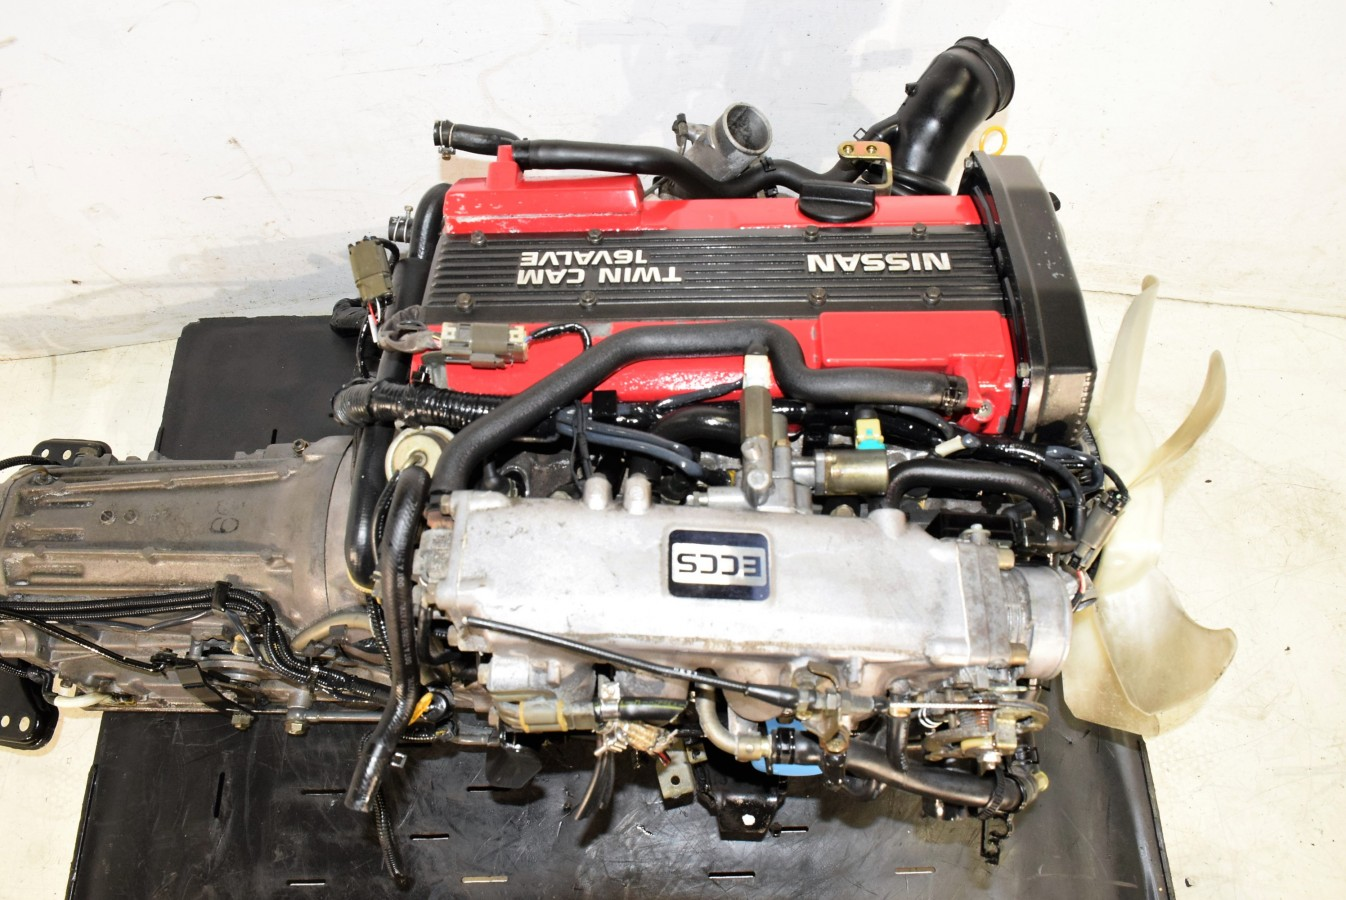 Used Jdm Nissan 240sx Ca18det Engine 1 8l Dohc Turbo With Rwd Auto Trans